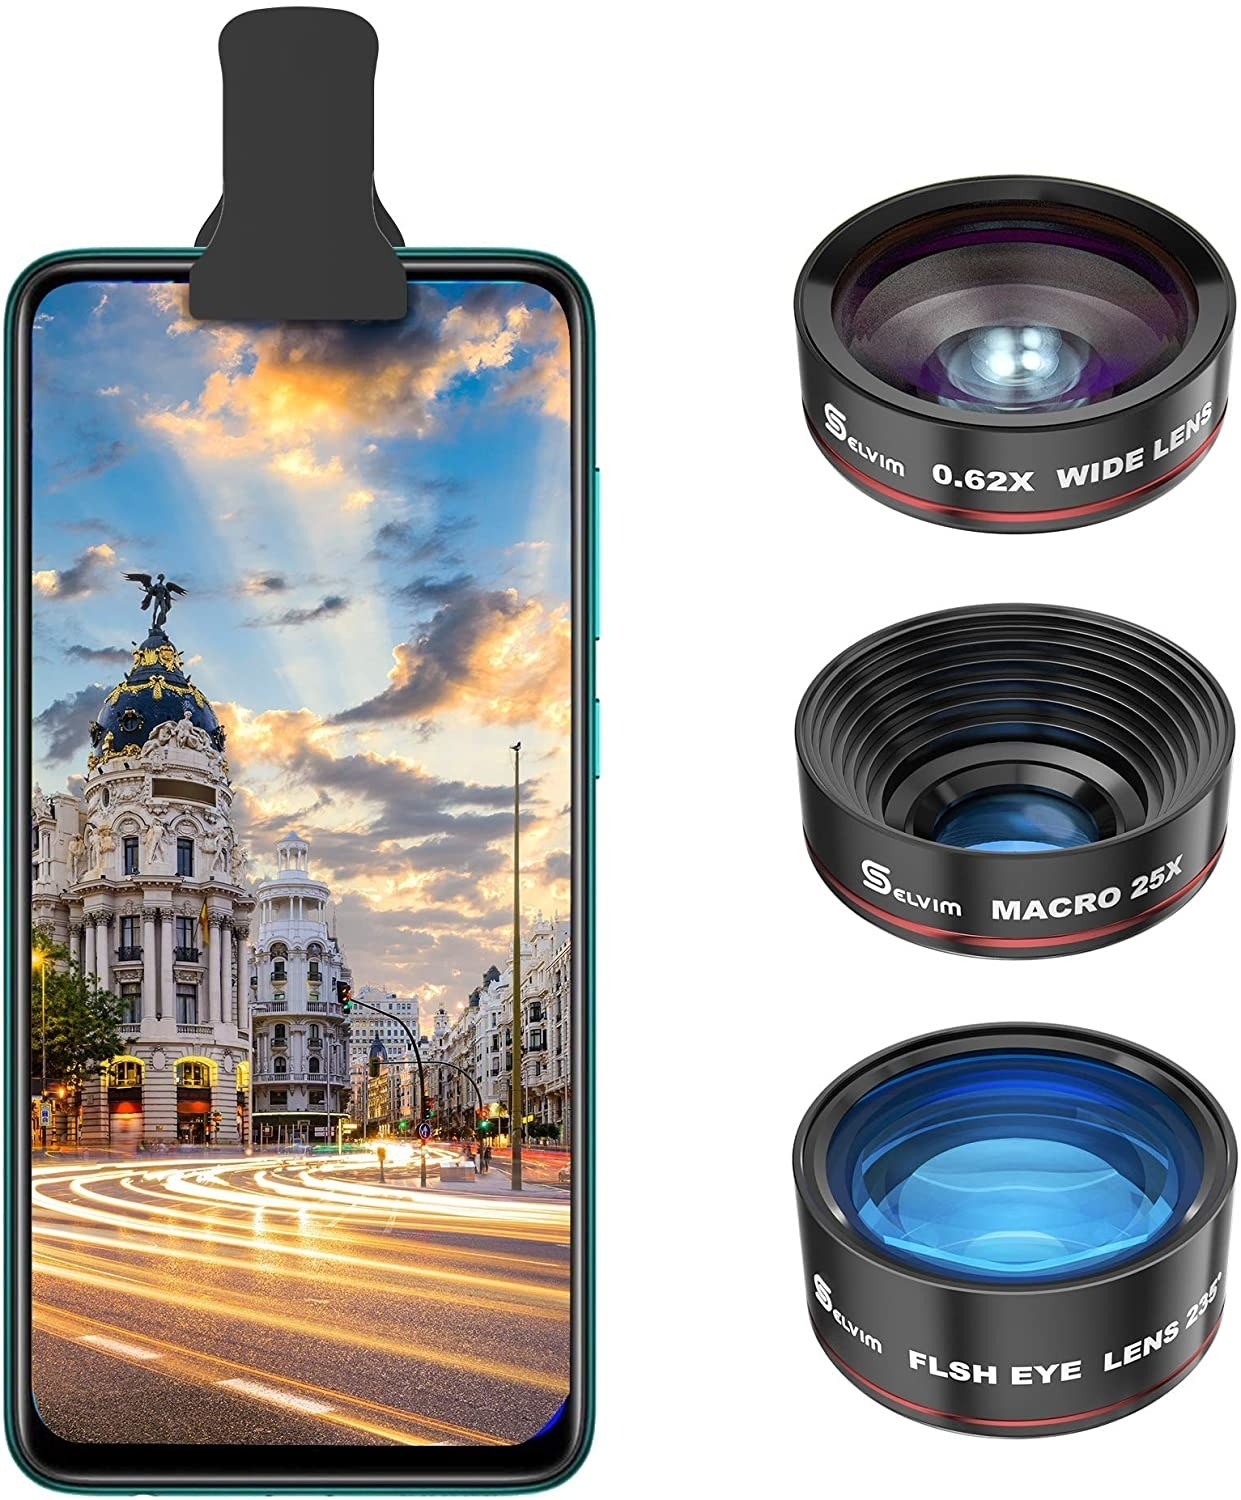 A phone with three lenses next to it